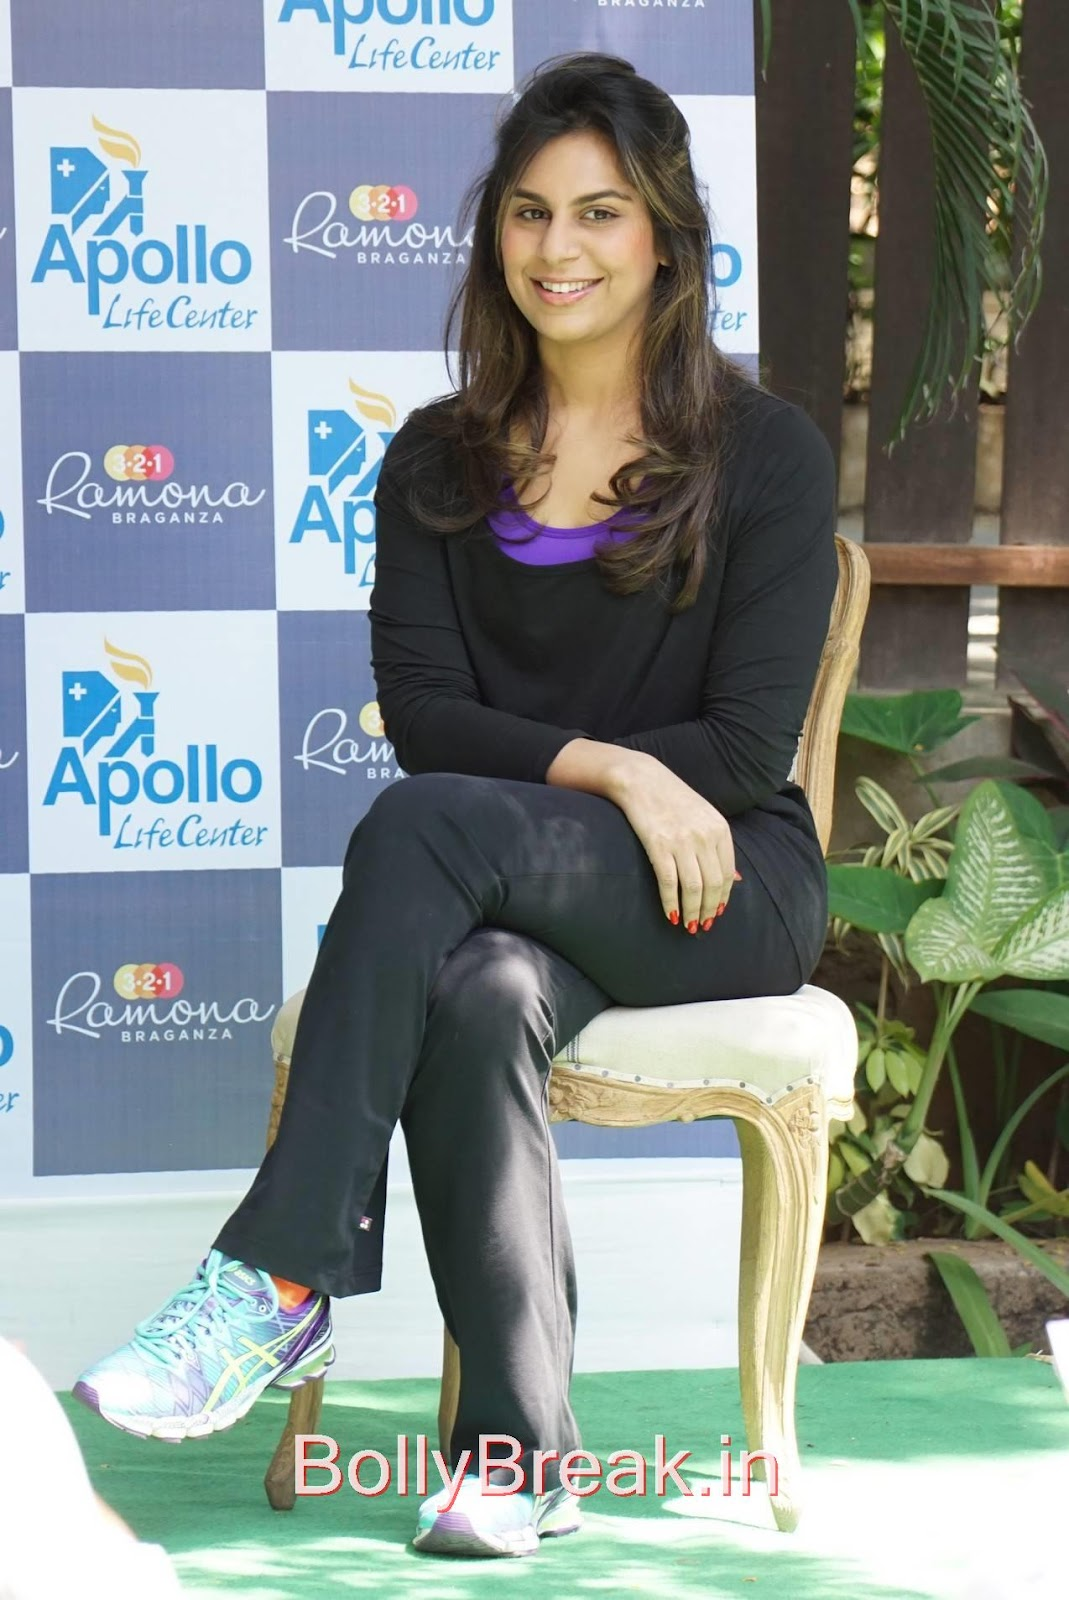 Apollo Hospitals Hollywood Fitness Expert, Hot HD Images Of Upasana Stills With Hollywood Fitness Expert At Apollo Hospitals